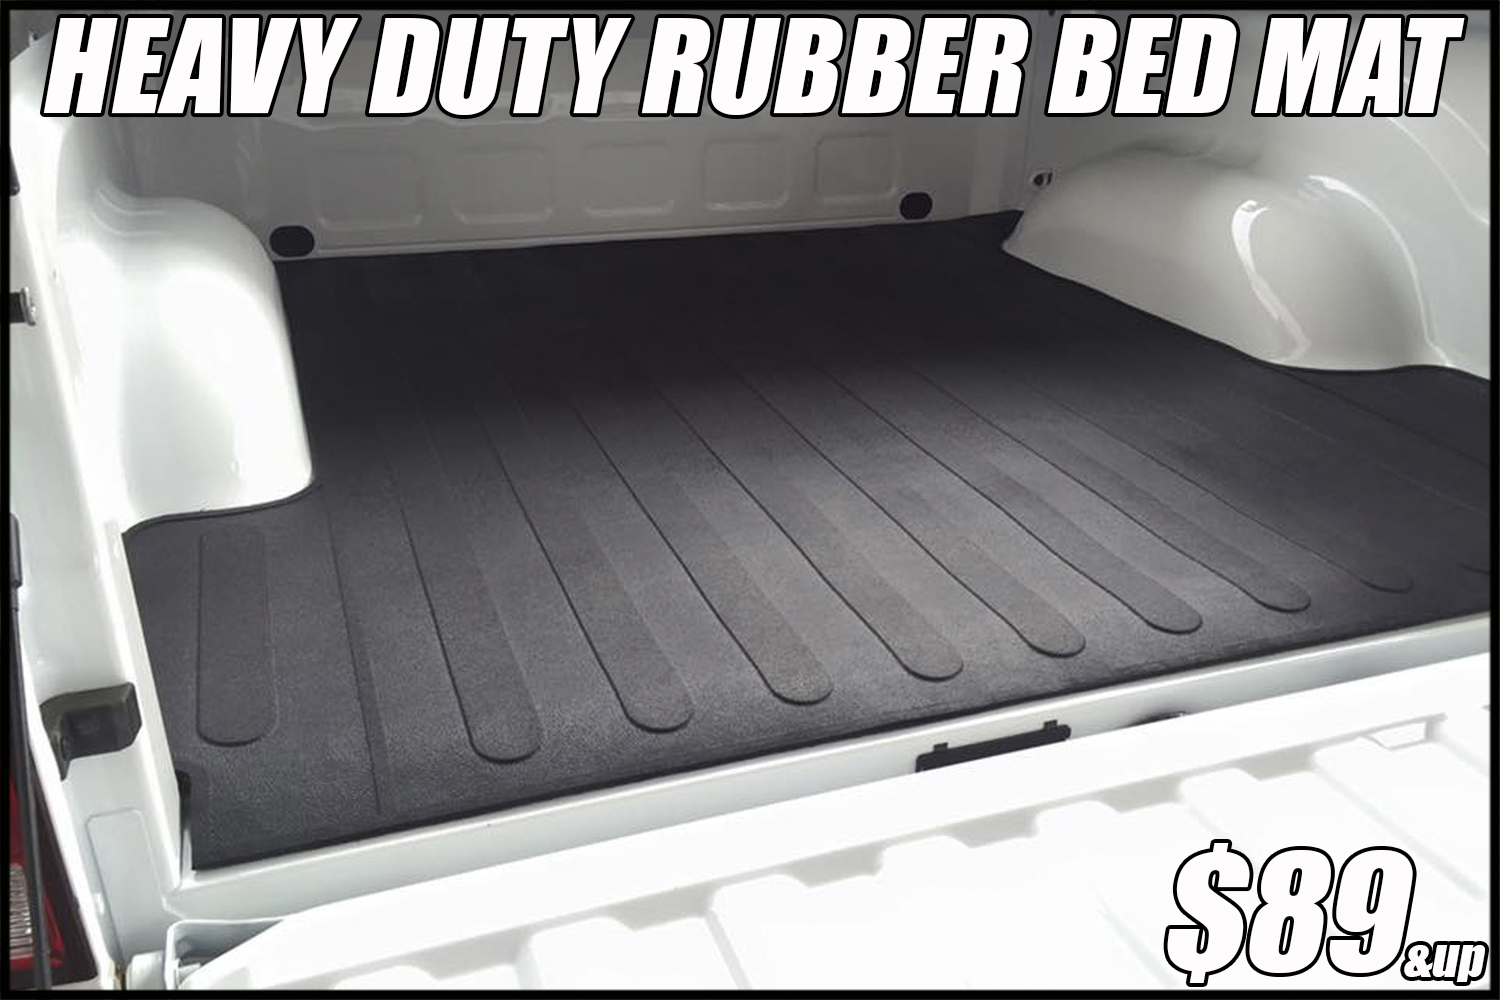 heavy-duty rubber truck bed mat